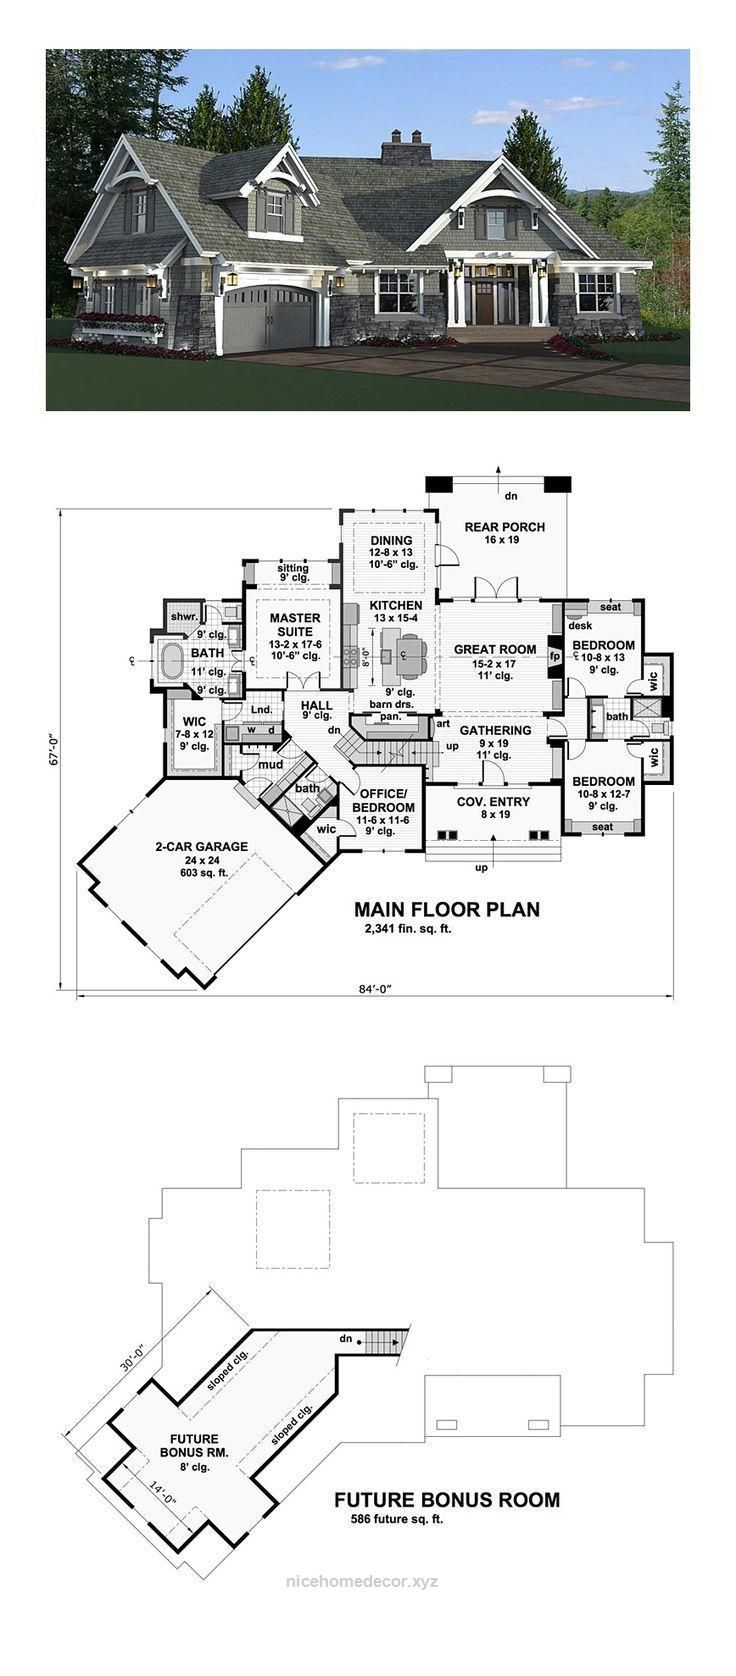 51 Maison Plan Francaise French Country House Craftsman House Plans Country House Plans